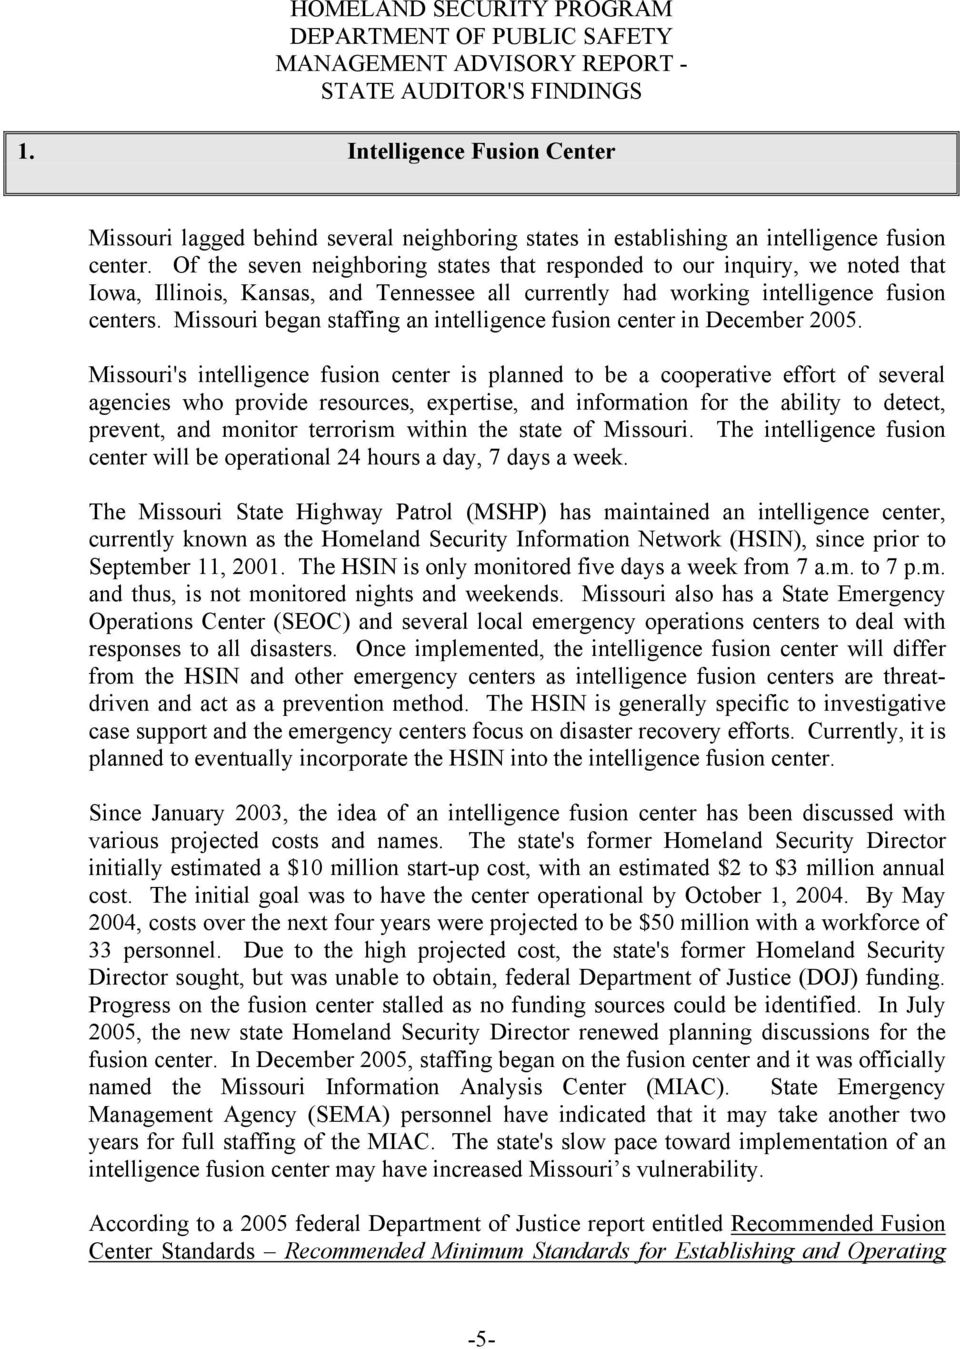 Of the seven neighboring states that responded to our inquiry, we noted that Iowa, Illinois, Kansas, and Tennessee all currently had working intelligence fusion centers.